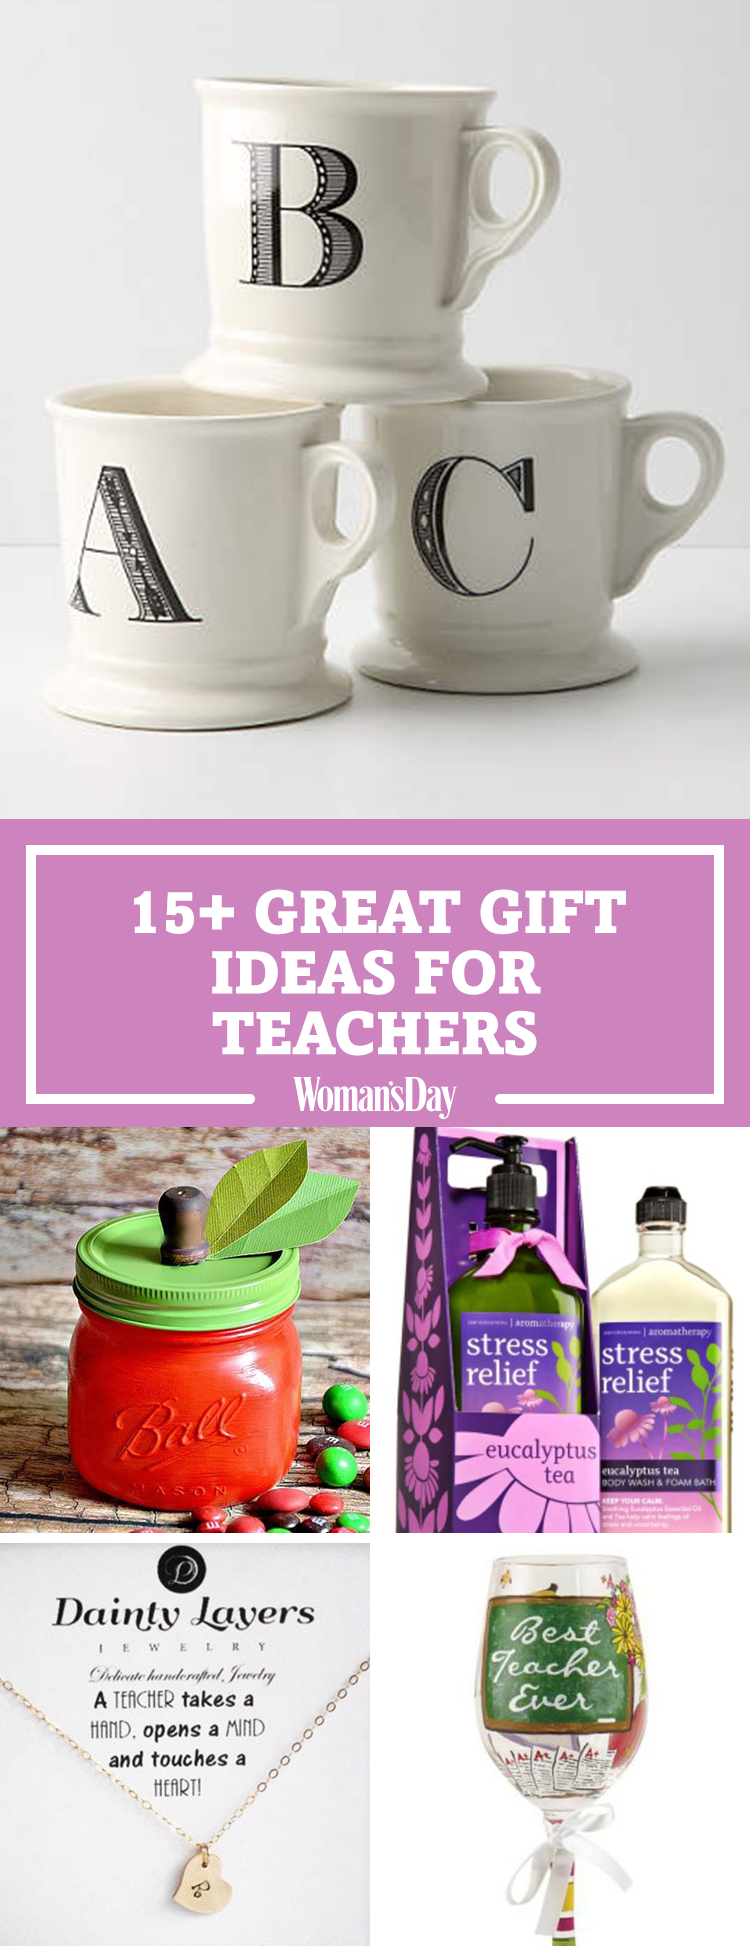 teachers gift teacher gifts christmas present holiday presents simple favorite parents woman appreciation perfect easy kid